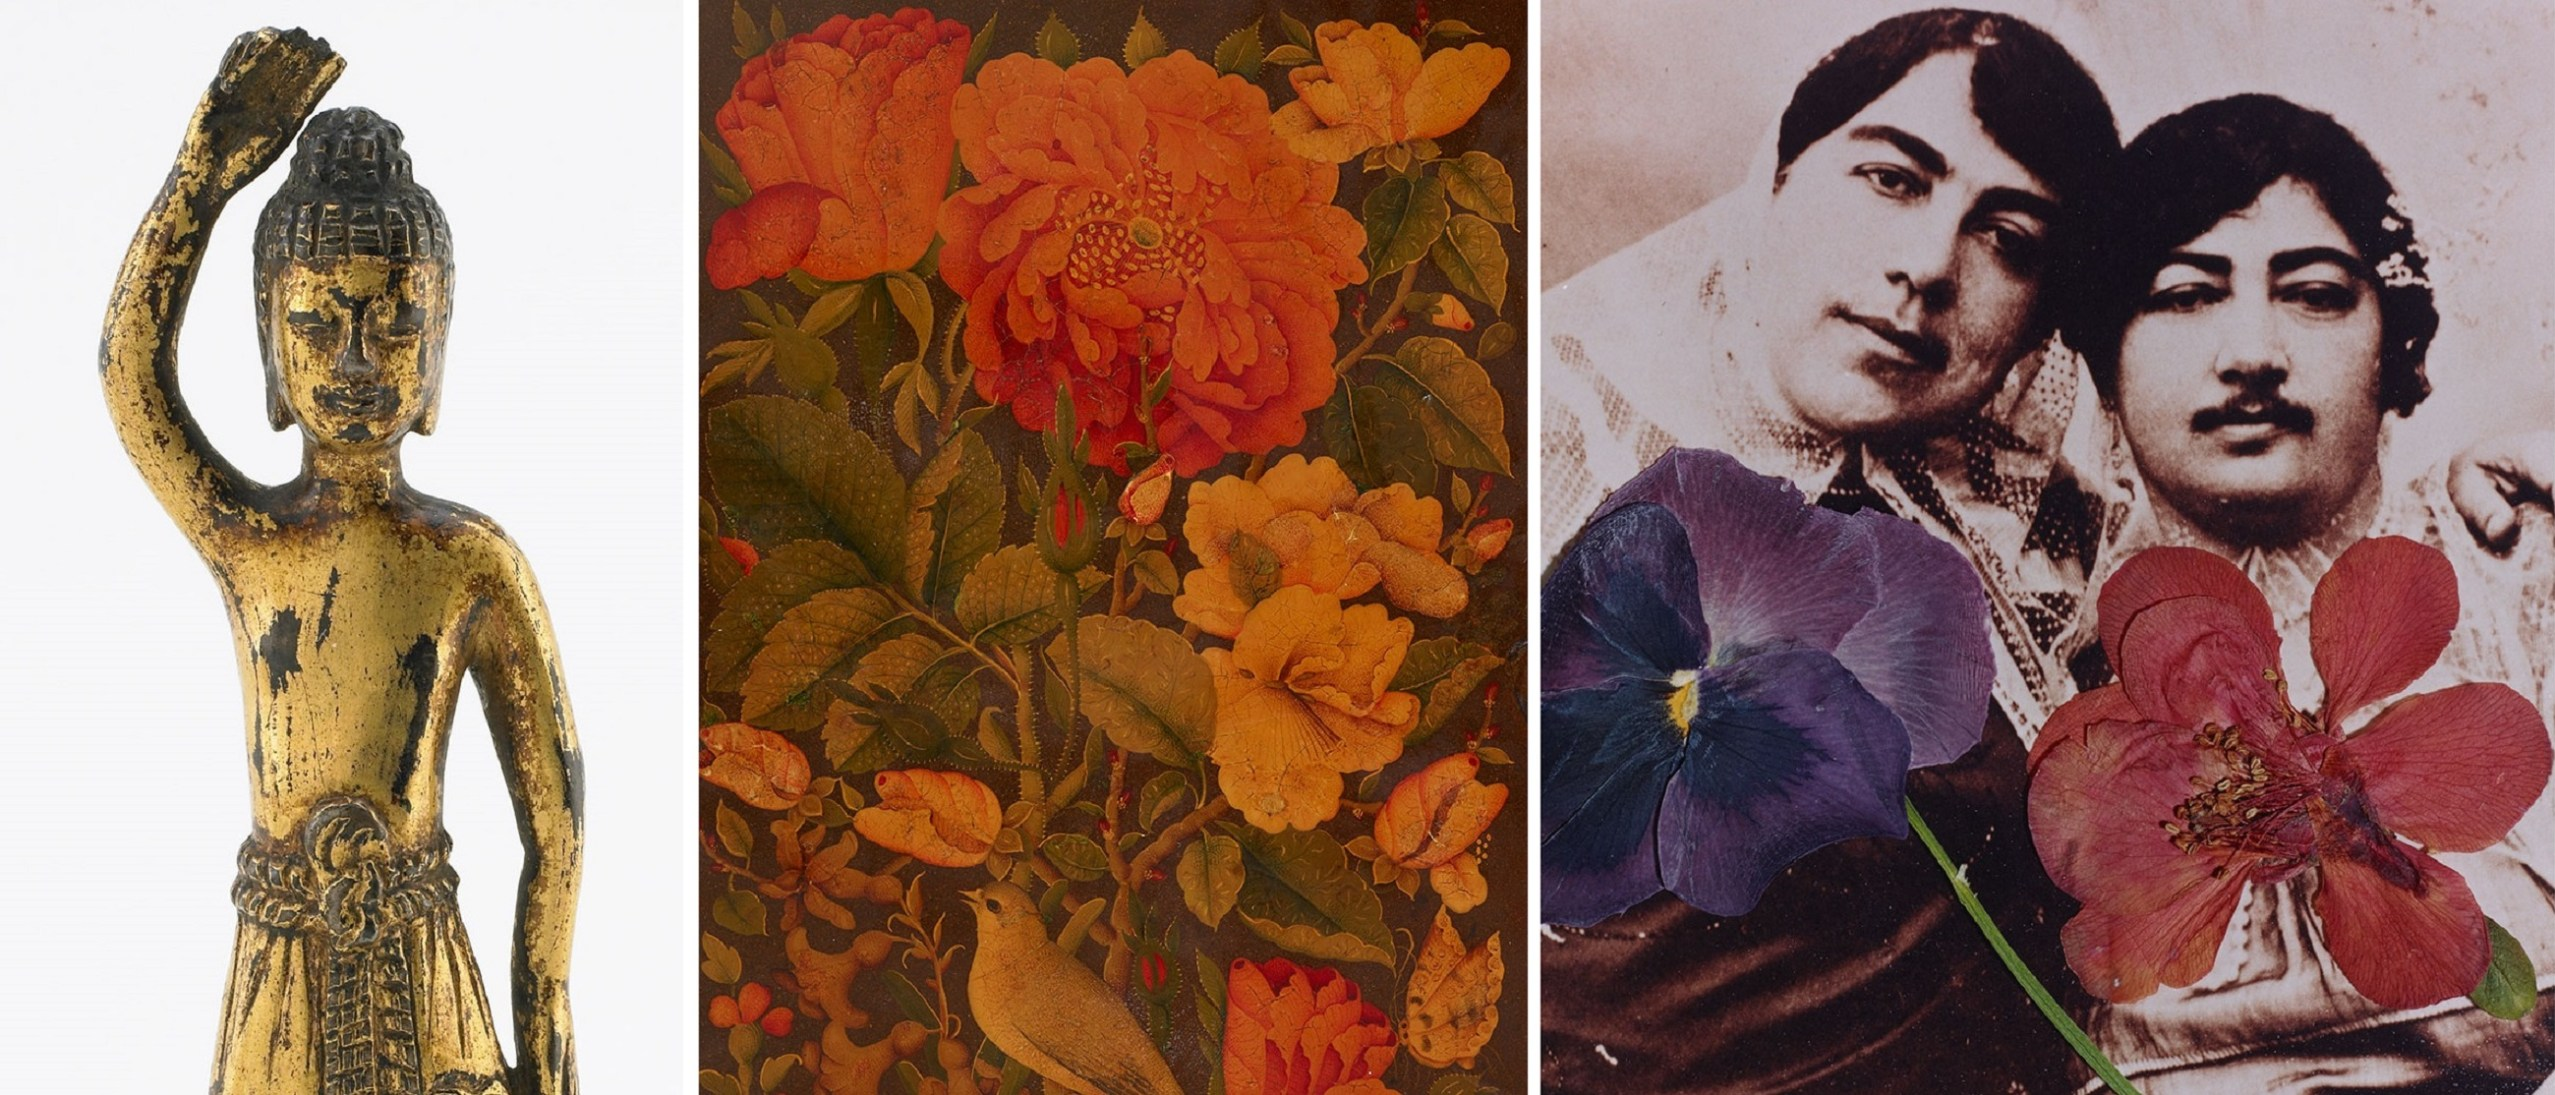 Right, detail image, The Buddha at Birth, F2005.9a–b; Detail, mirror case, RLS2014.9.157; Center, detail image, Untitled, from Flowers in the Image of Imagination series, S2013.9; Left, detail image, mirror case, RLS2014.9.157